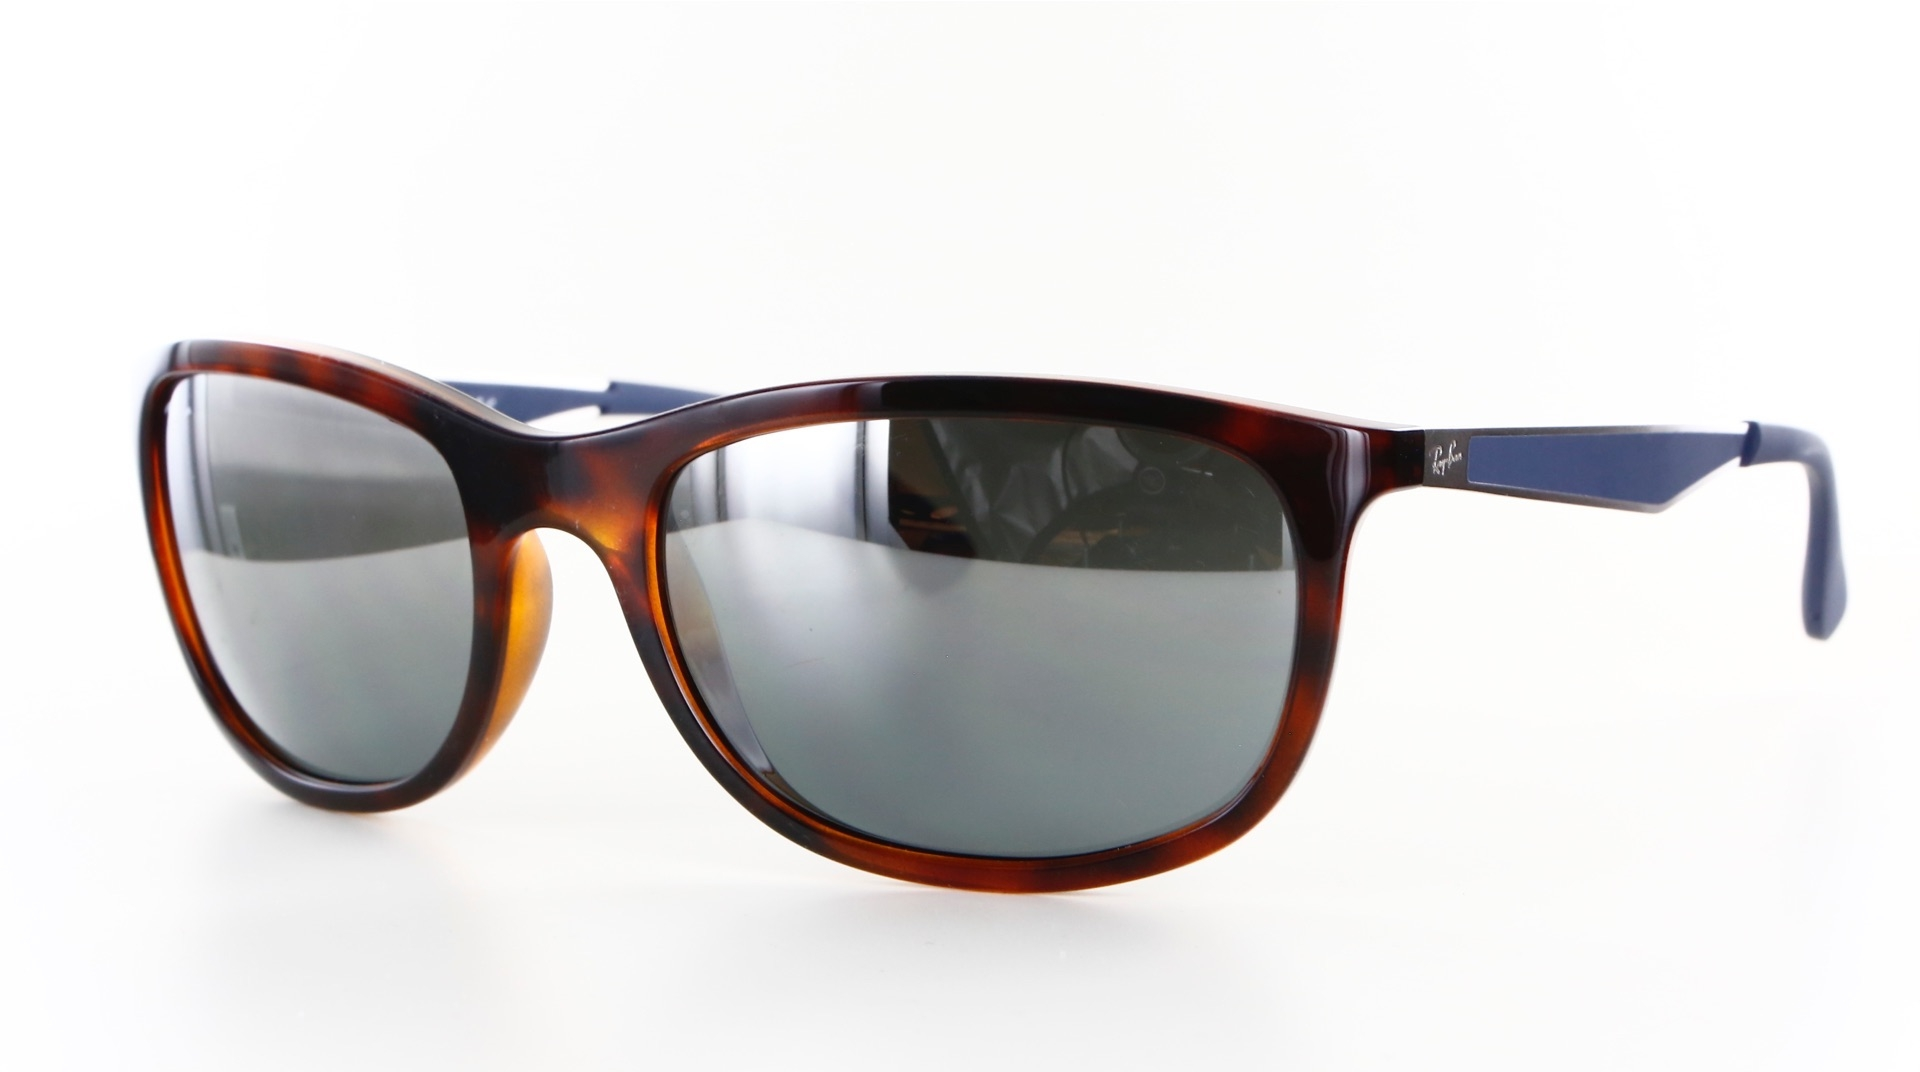 Ray-Ban - ref: 76822